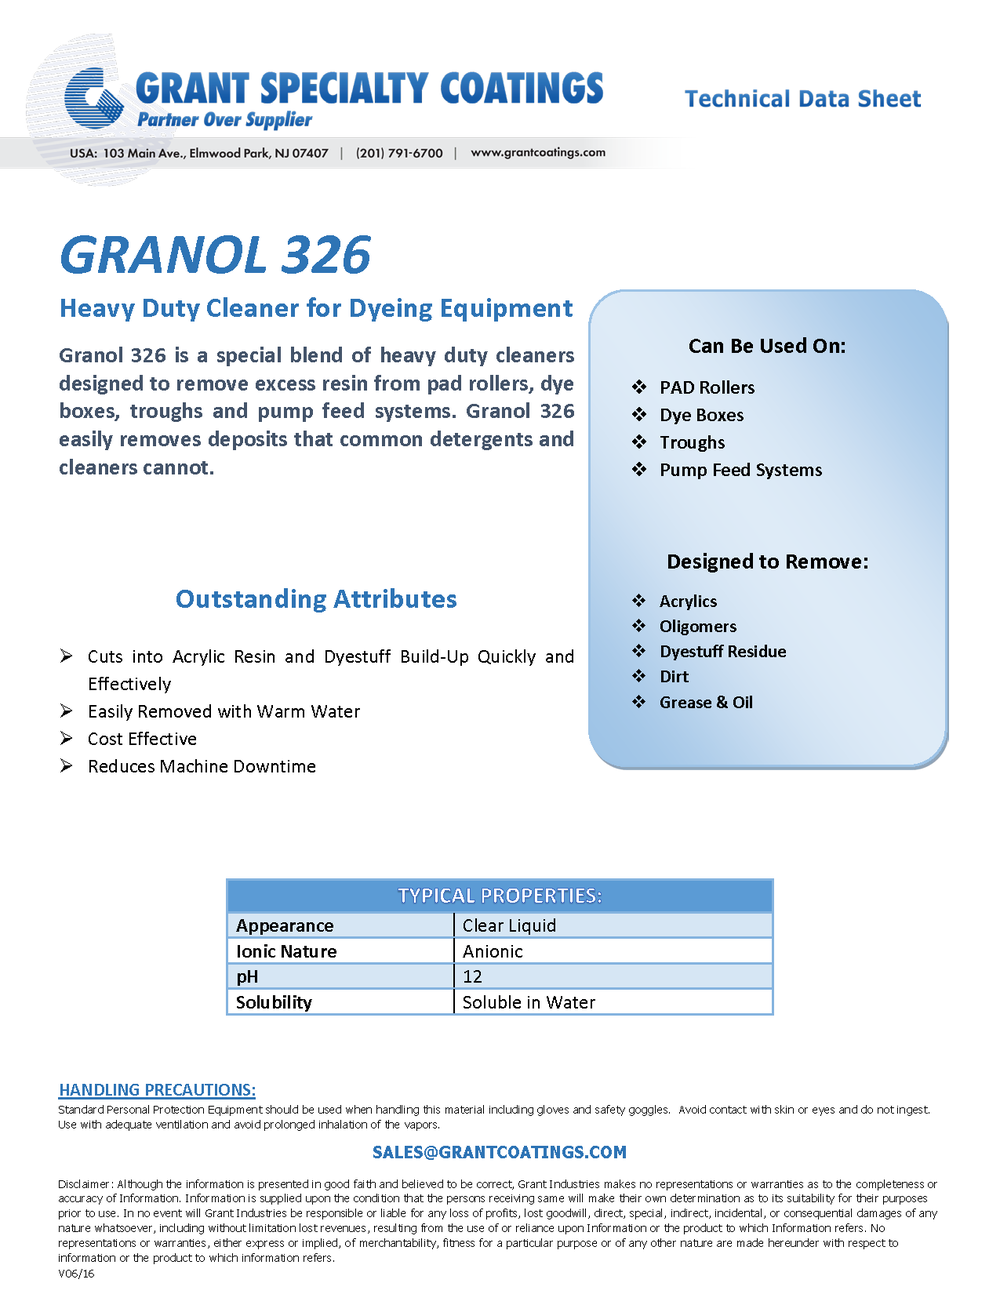 Granol 326 Dyeing Equipment Cleaner.png